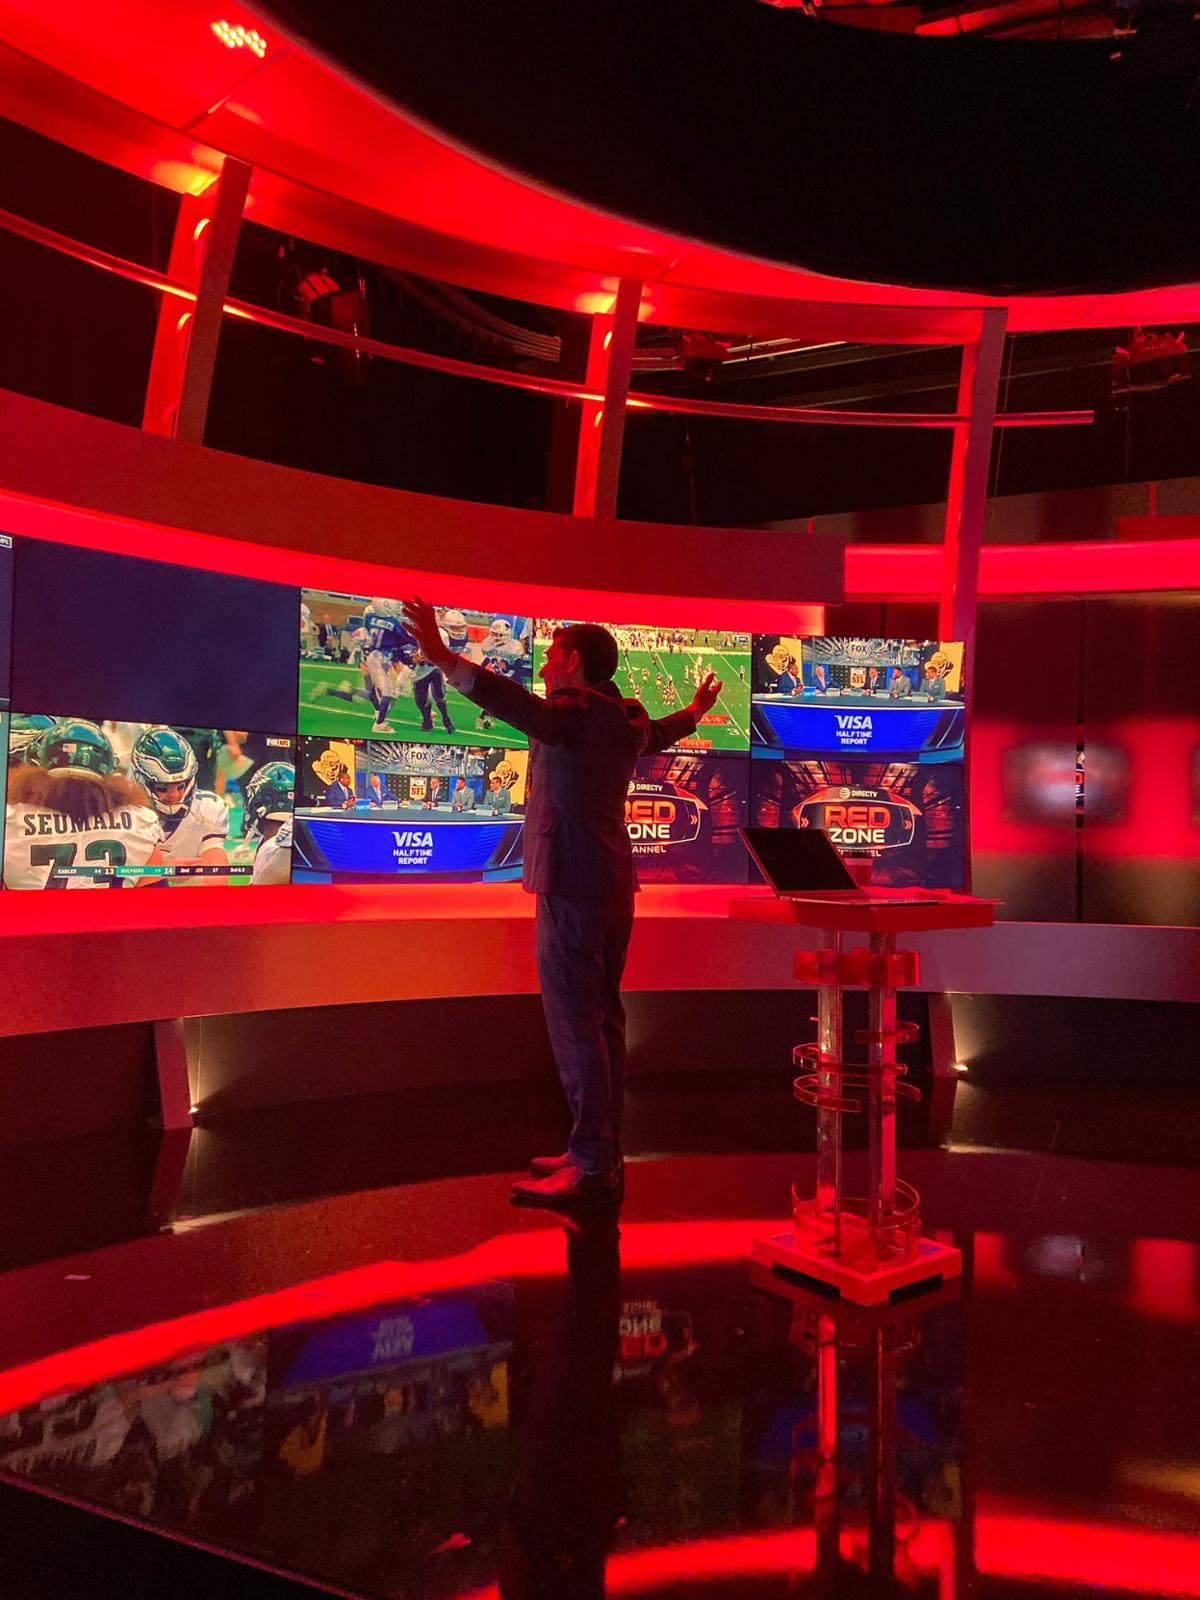 Andrew Siciliano on the set of NFL Red Zone at NFL Network in Culver City, Calif.